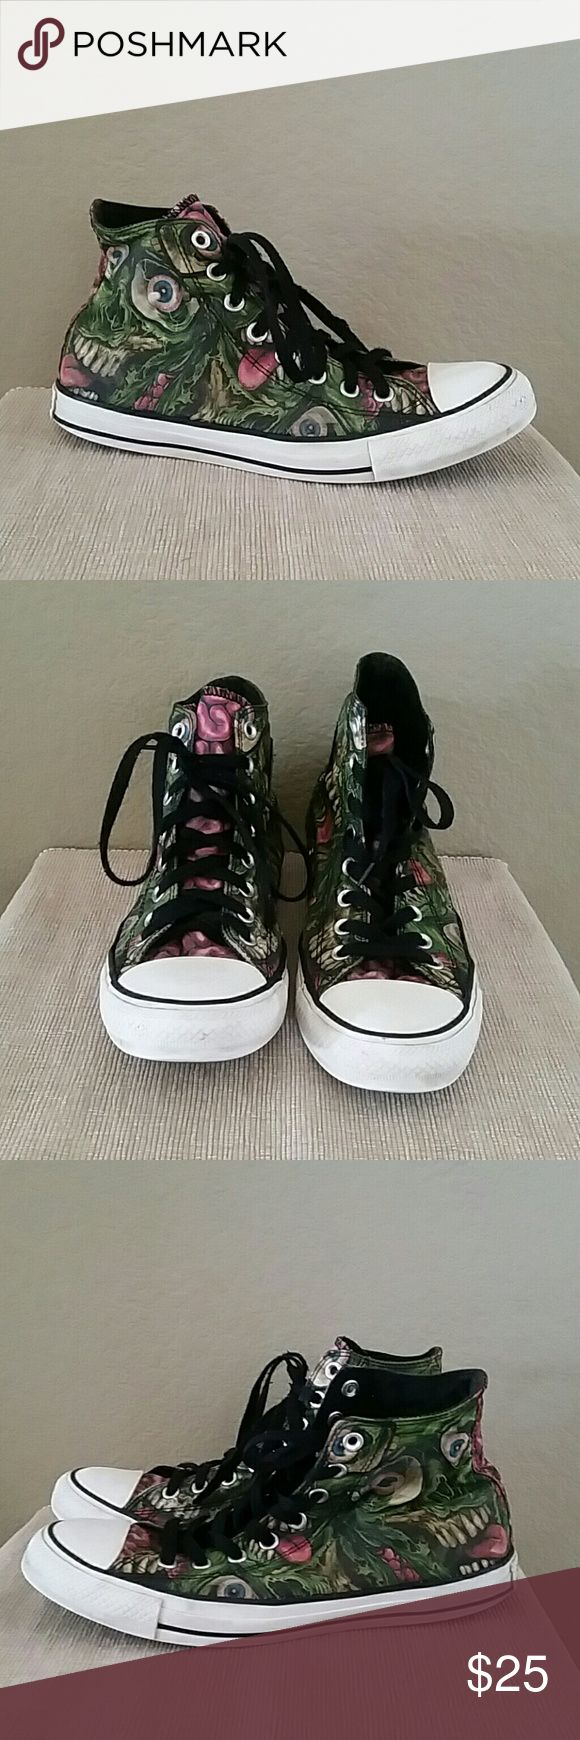 Zombie Converse hi top sneakers Zombie Converse Chuck Taylor all star sneakers, high top, pre-owned, size 10 women's, Converse Shoes Sneakers